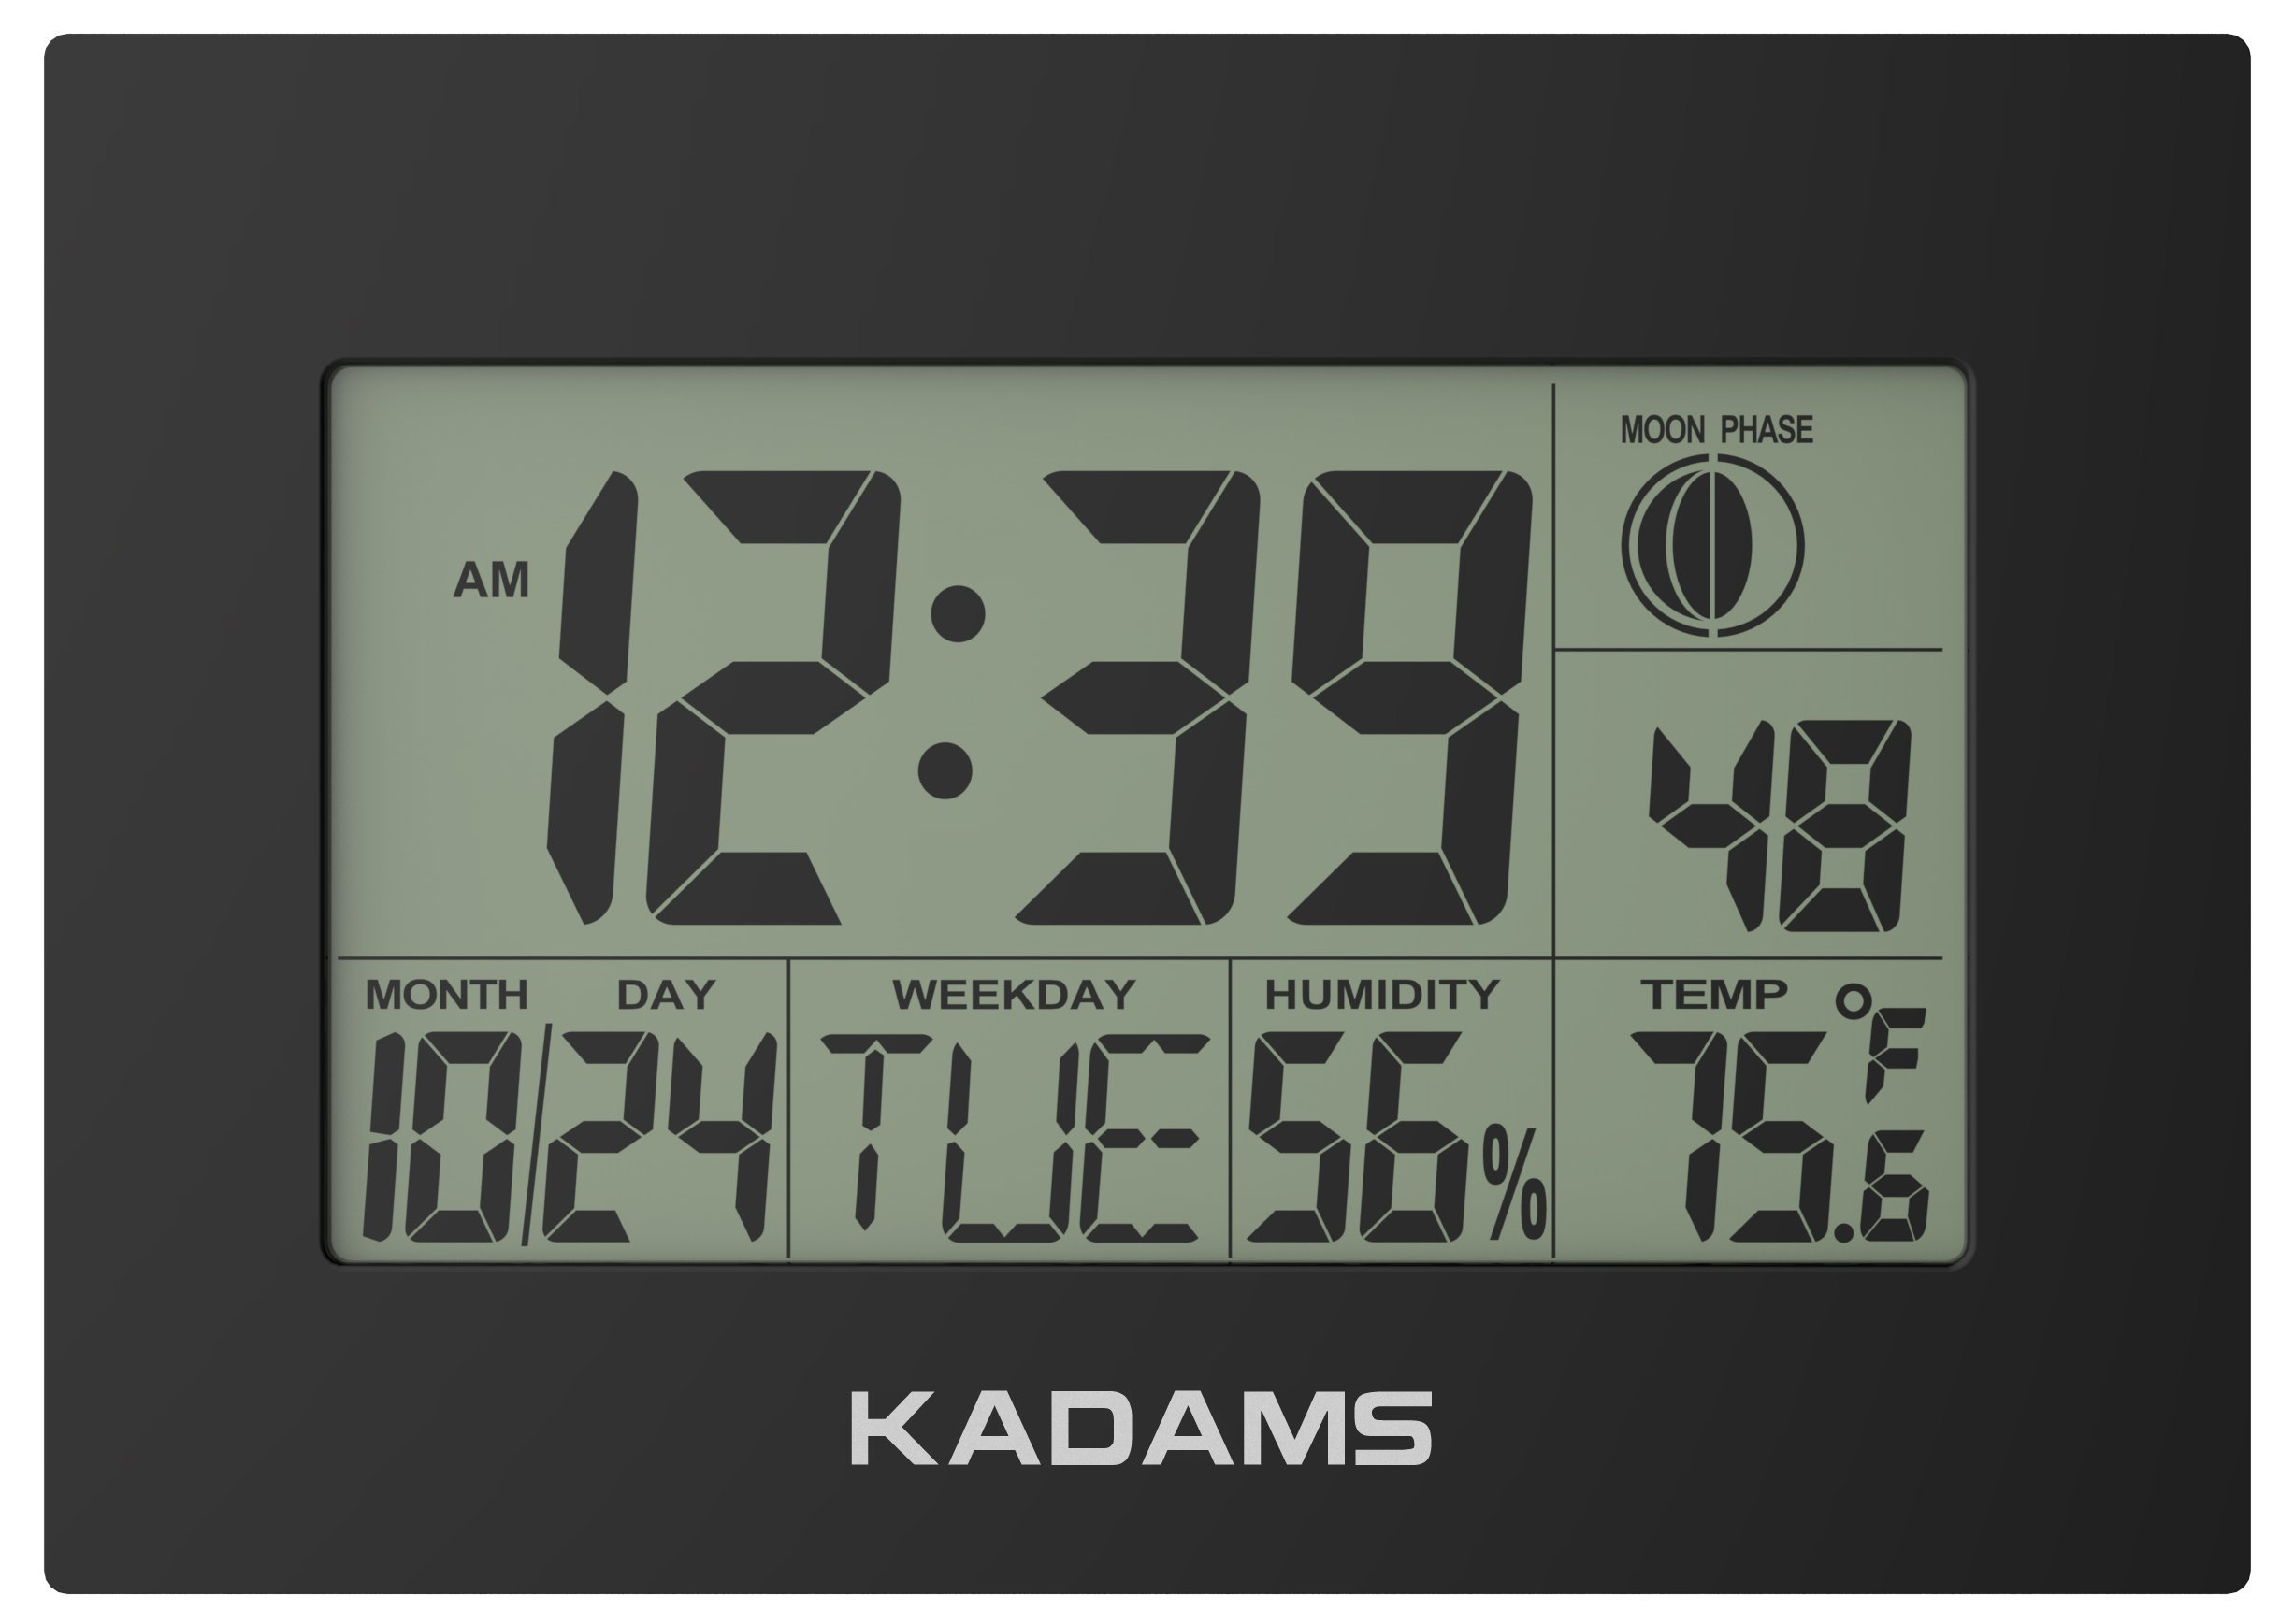 KADAMS Digital Wall Clock with Alarm, Seconds Counter, Snooze, Calendar Date Day, Indoor Temperature, Humidity, Moon Phase, Large Display, Shelf and Desk Clock Stand, Non Atomic, No Backlight - Black by KADAMS